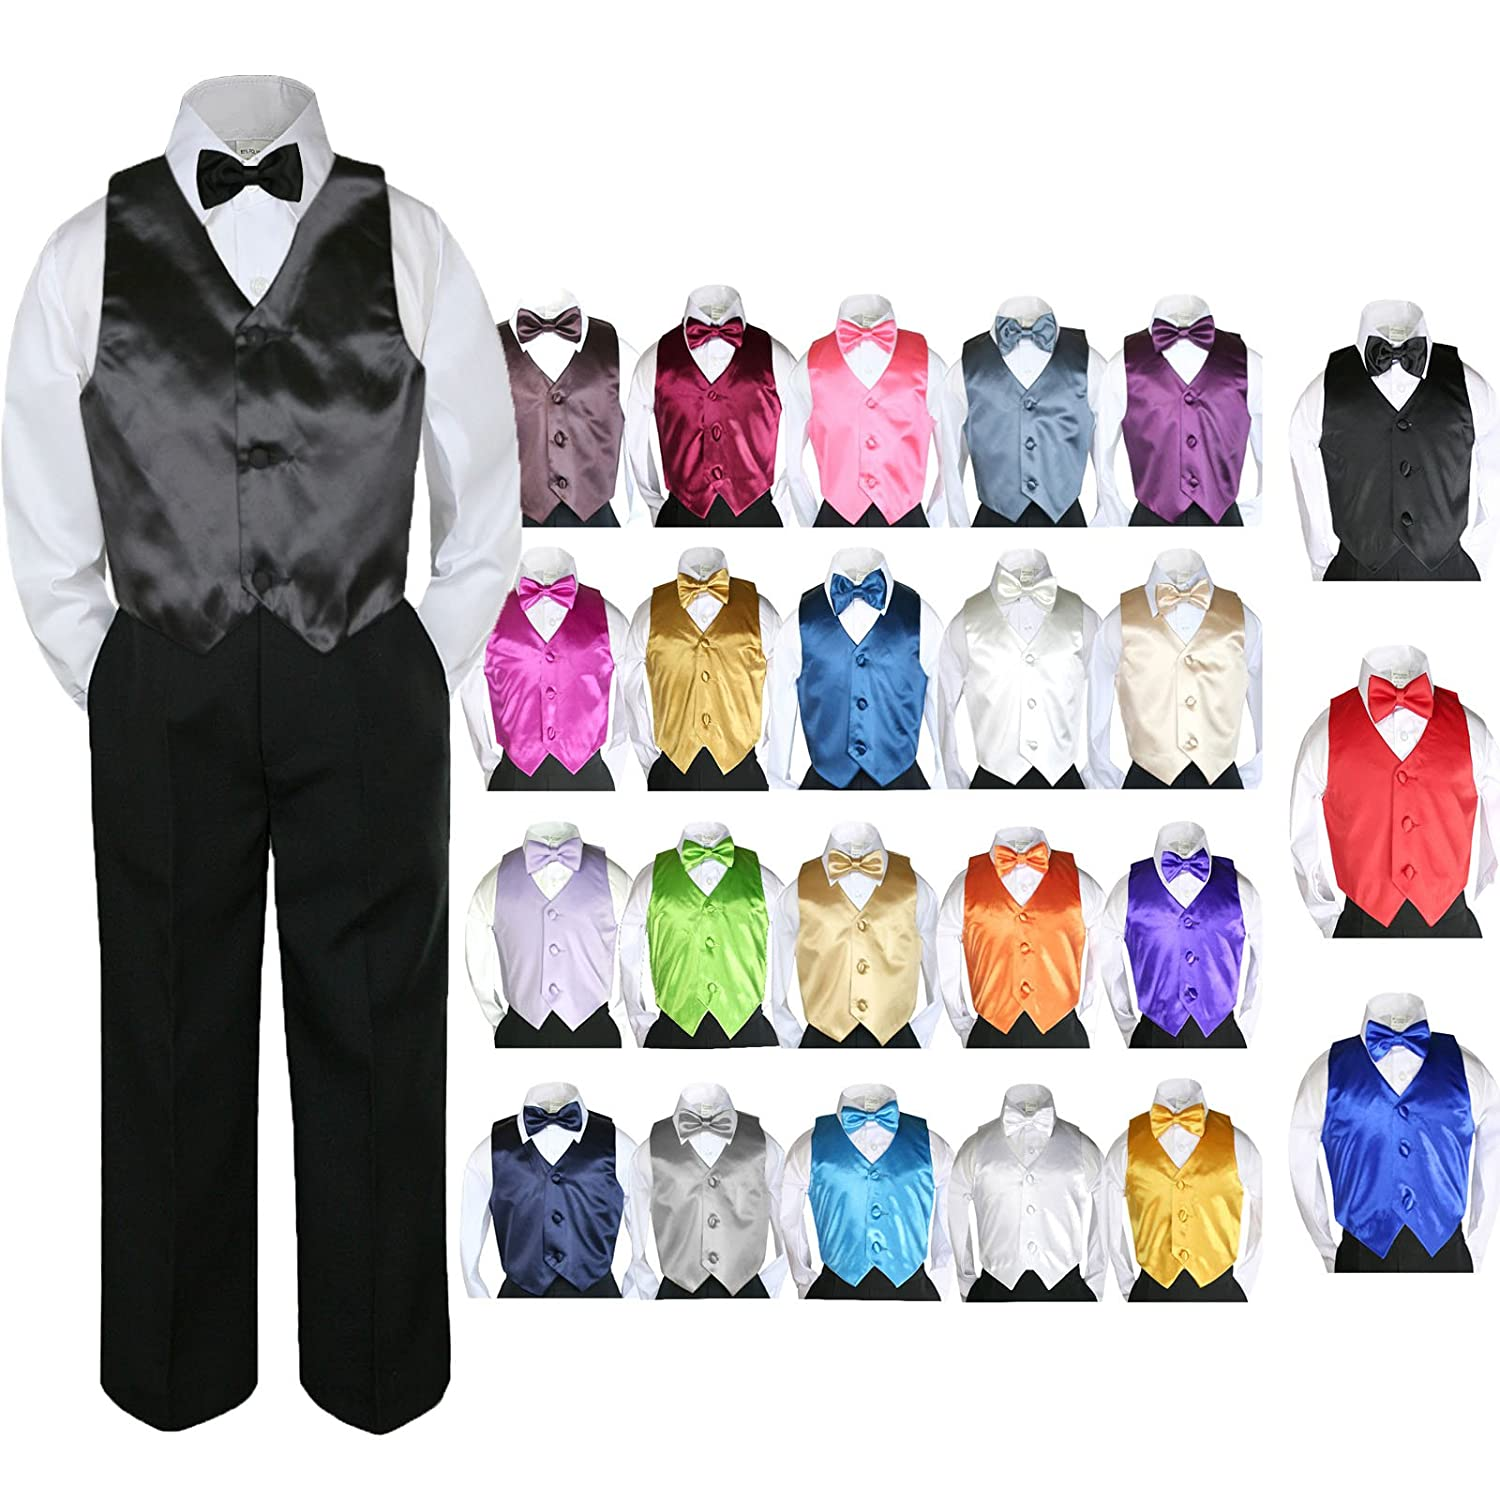 4pc Baby Toddler Kid Boy Party Suit BLACK Pants Shirt Vest Bow tie Set Sm-4T